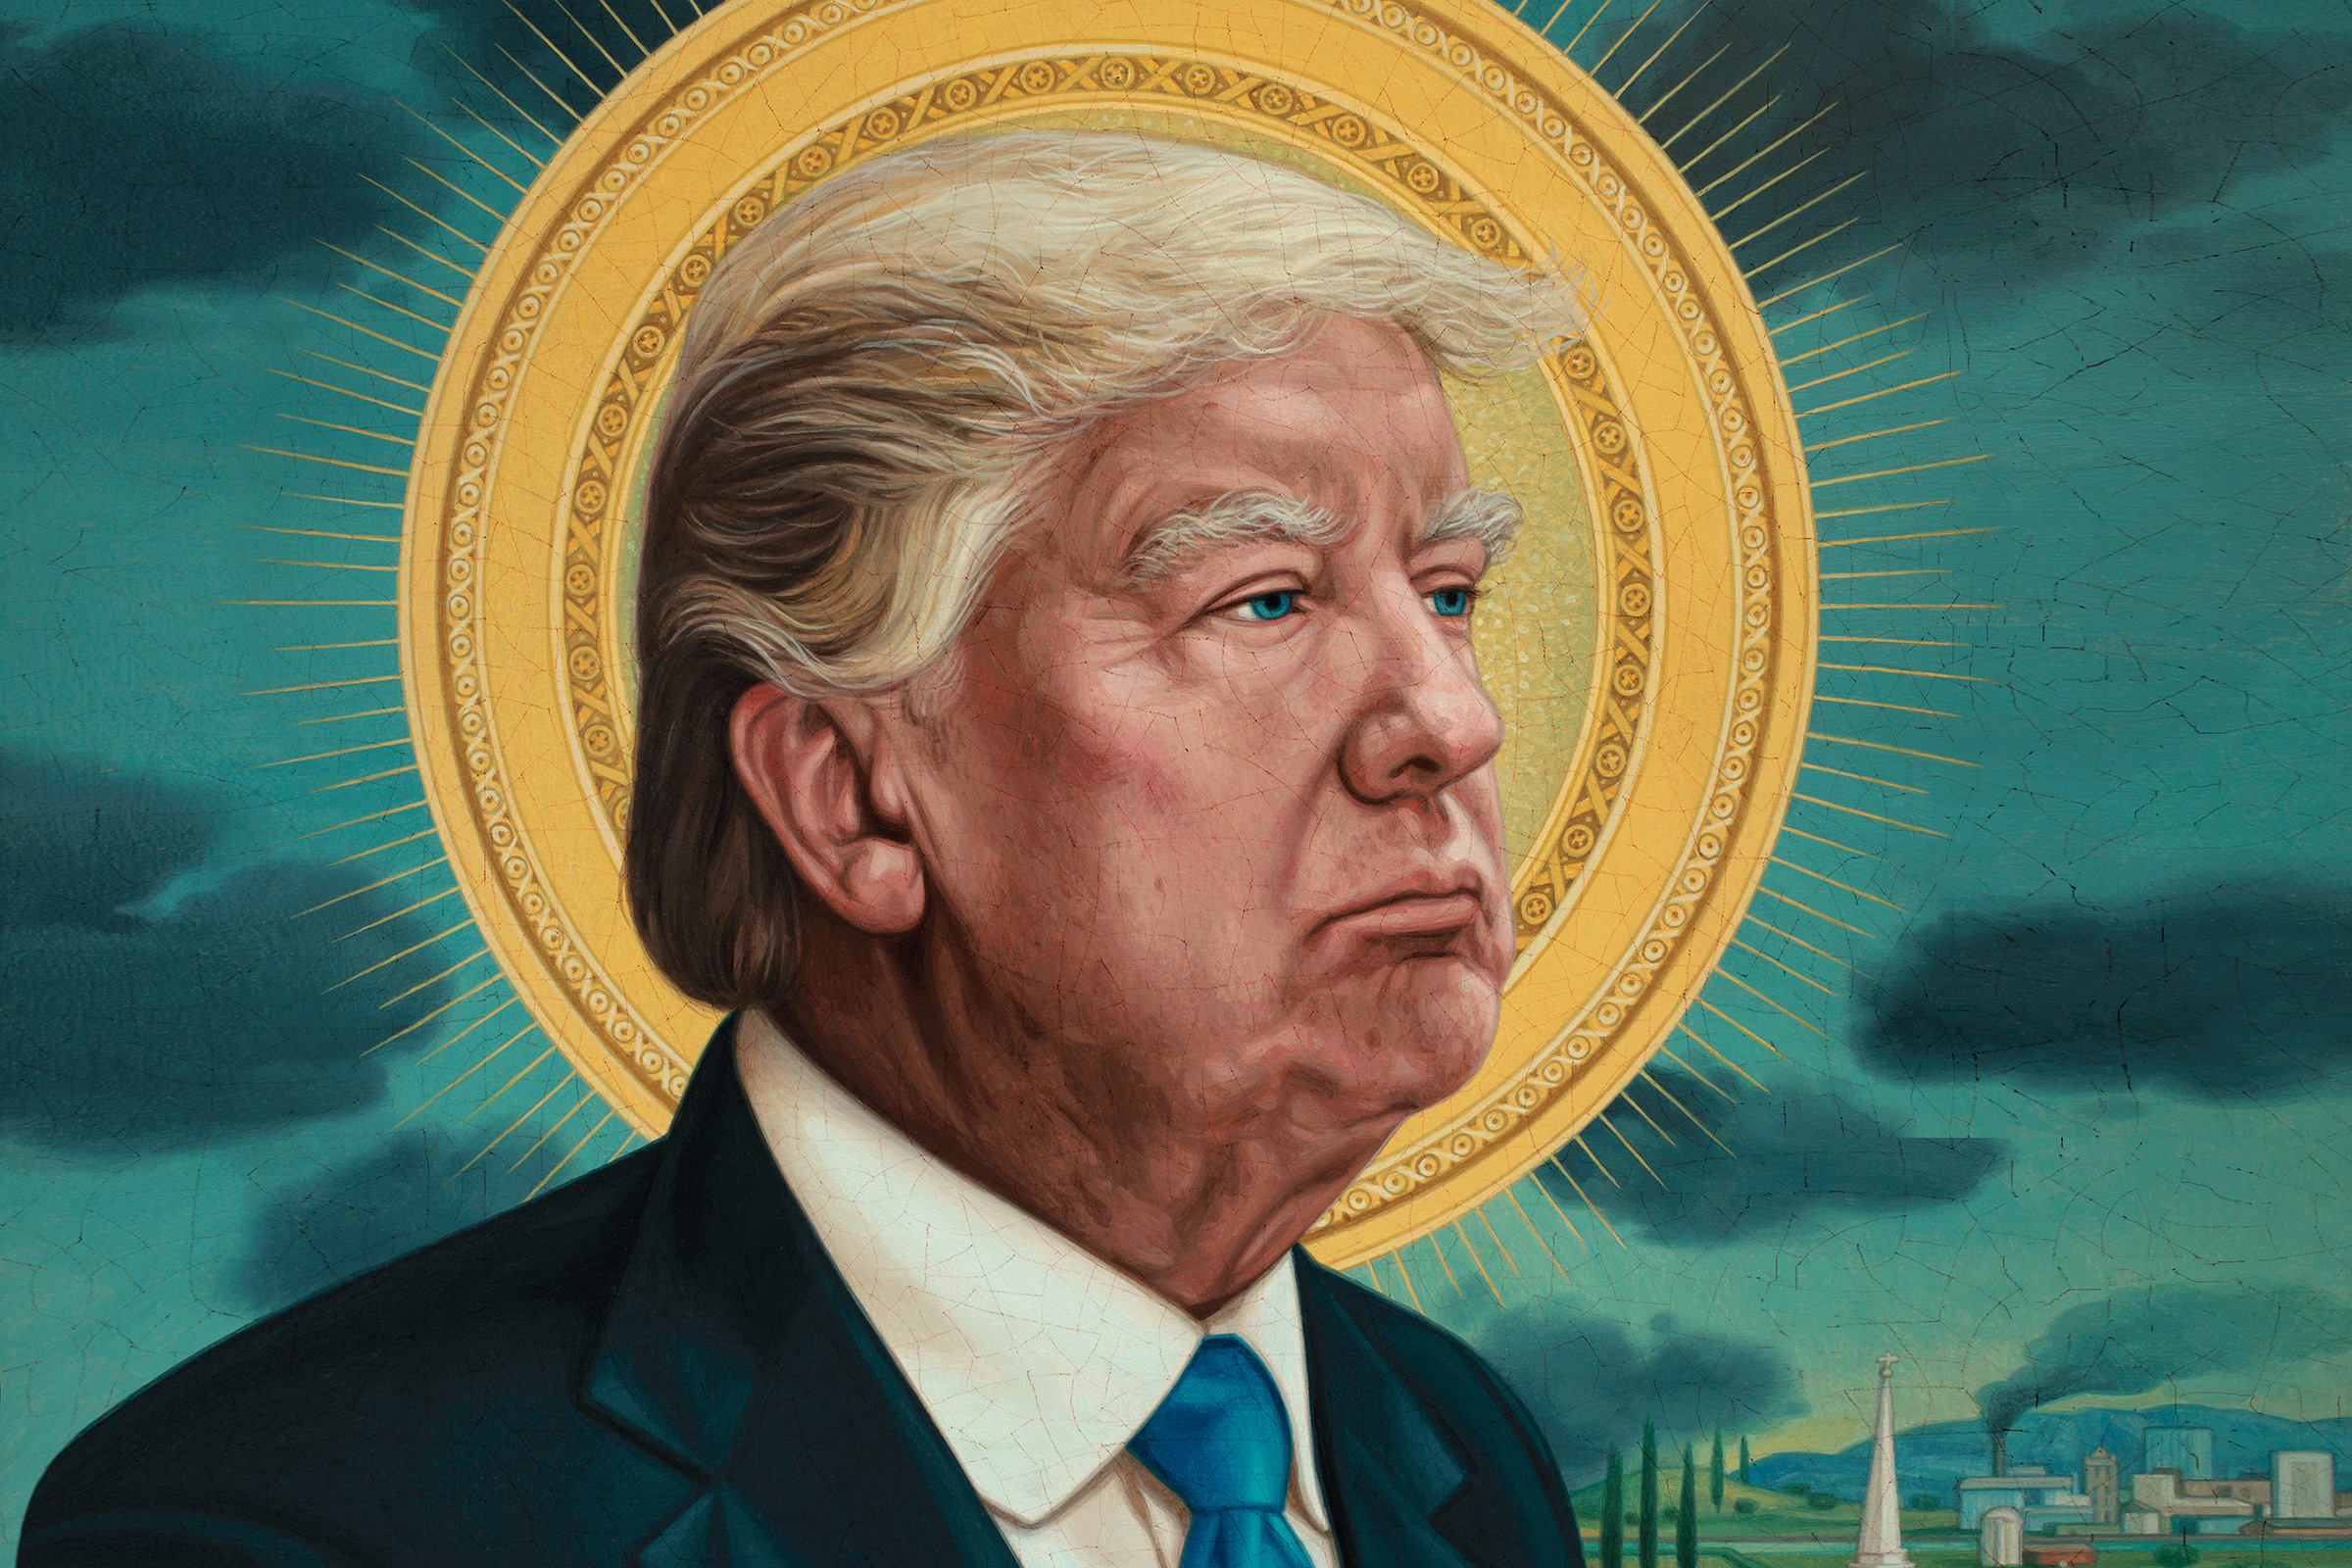 Why The Christian Right Worships Donald Trump